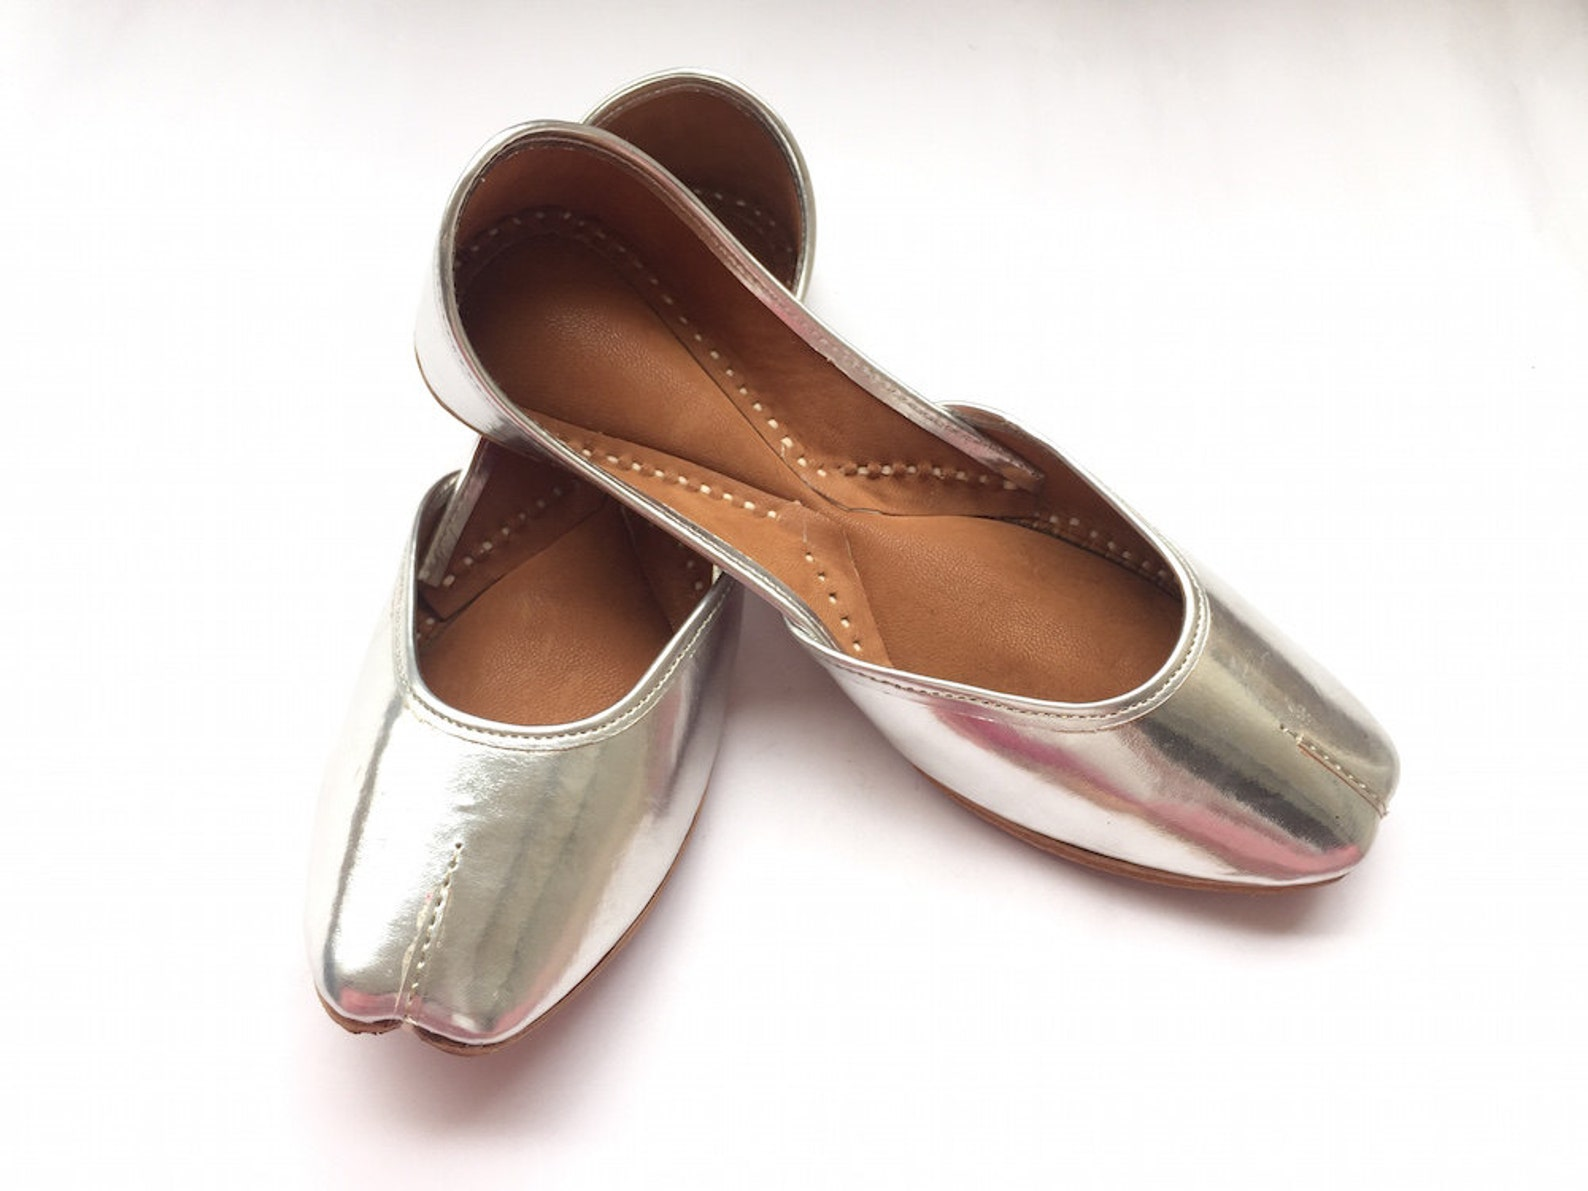 us 10 - chaandi ki parat - metallic silver leather ballet shoes for women, everyday wear - indian shoes from enhara/gift for her